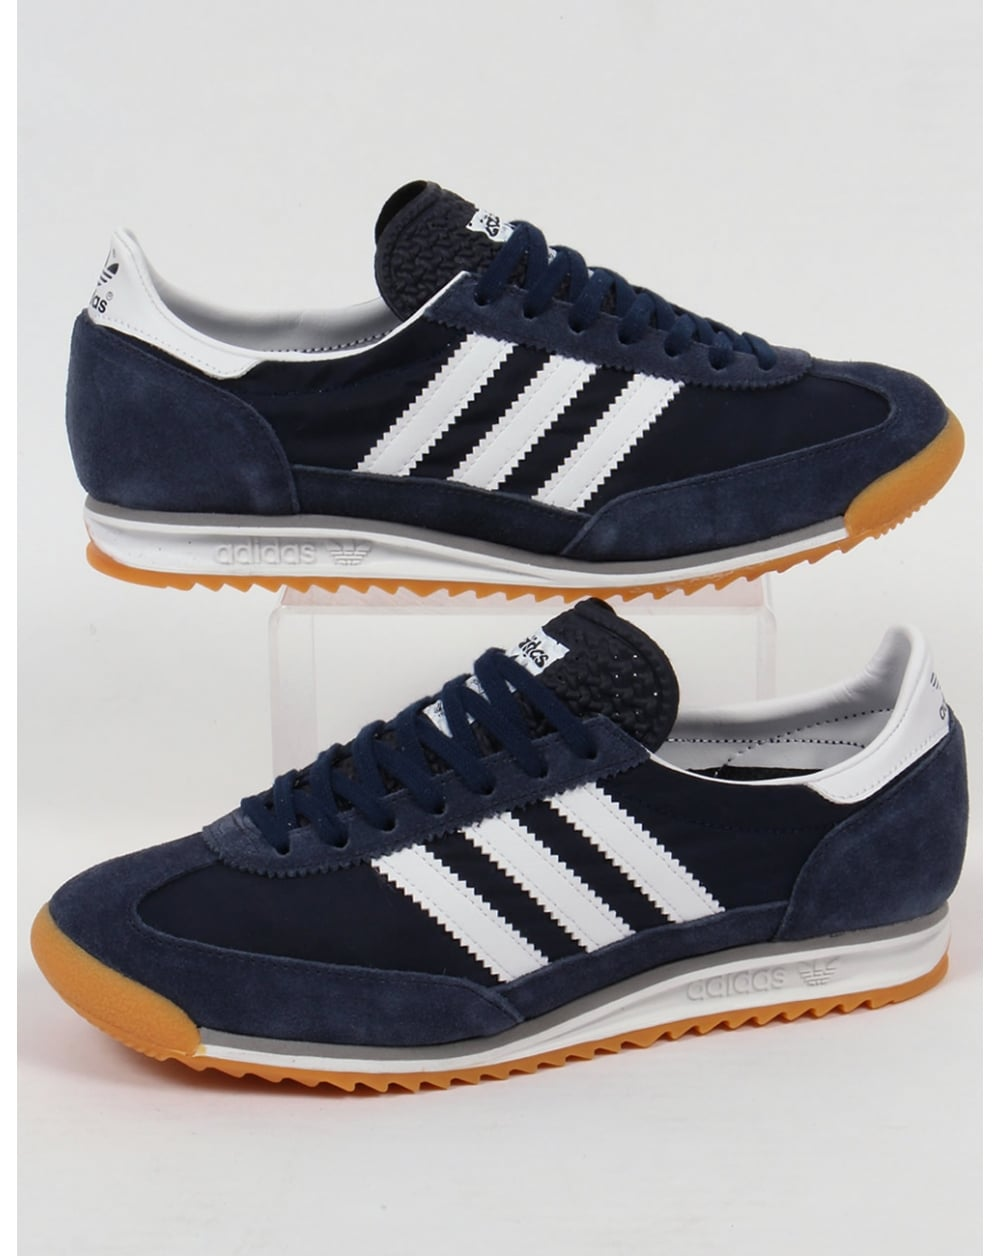 cacc7b8b6f63c Adidas SL 72 Trainers Navy/white,,originals,shoes,sneakers,runner